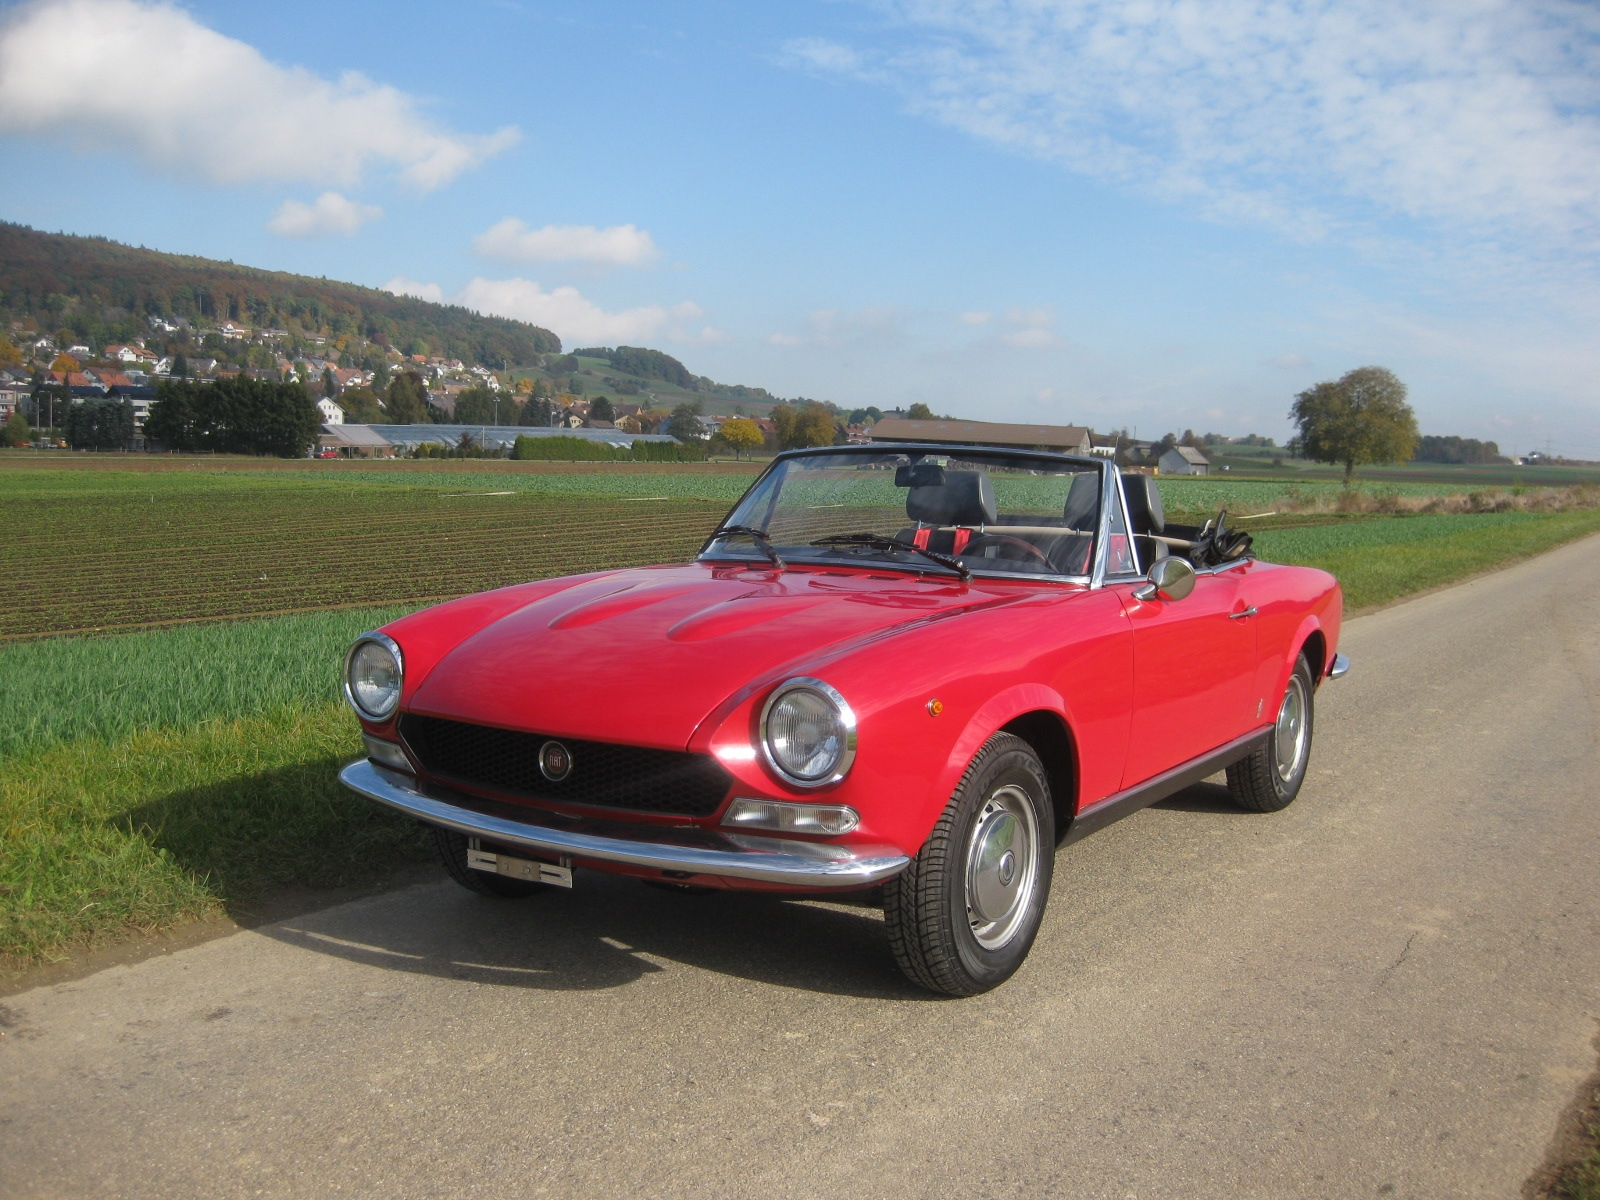 touring garage ag fiat 124 spider 1600 bs1 sport cabriolet 1973. Black Bedroom Furniture Sets. Home Design Ideas